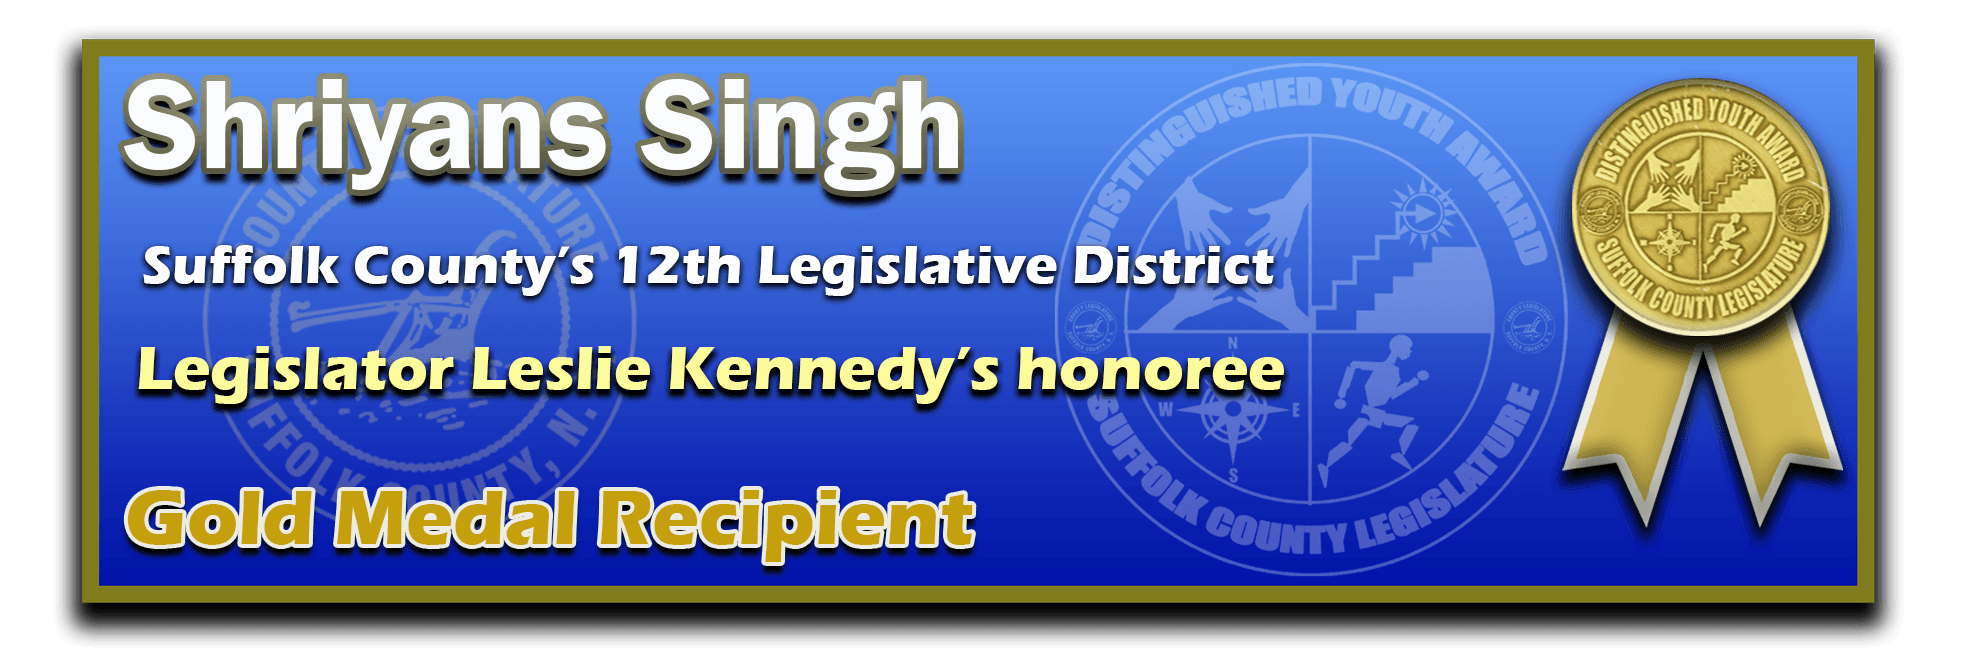 District 12 - Shriyans Singh - GOLD